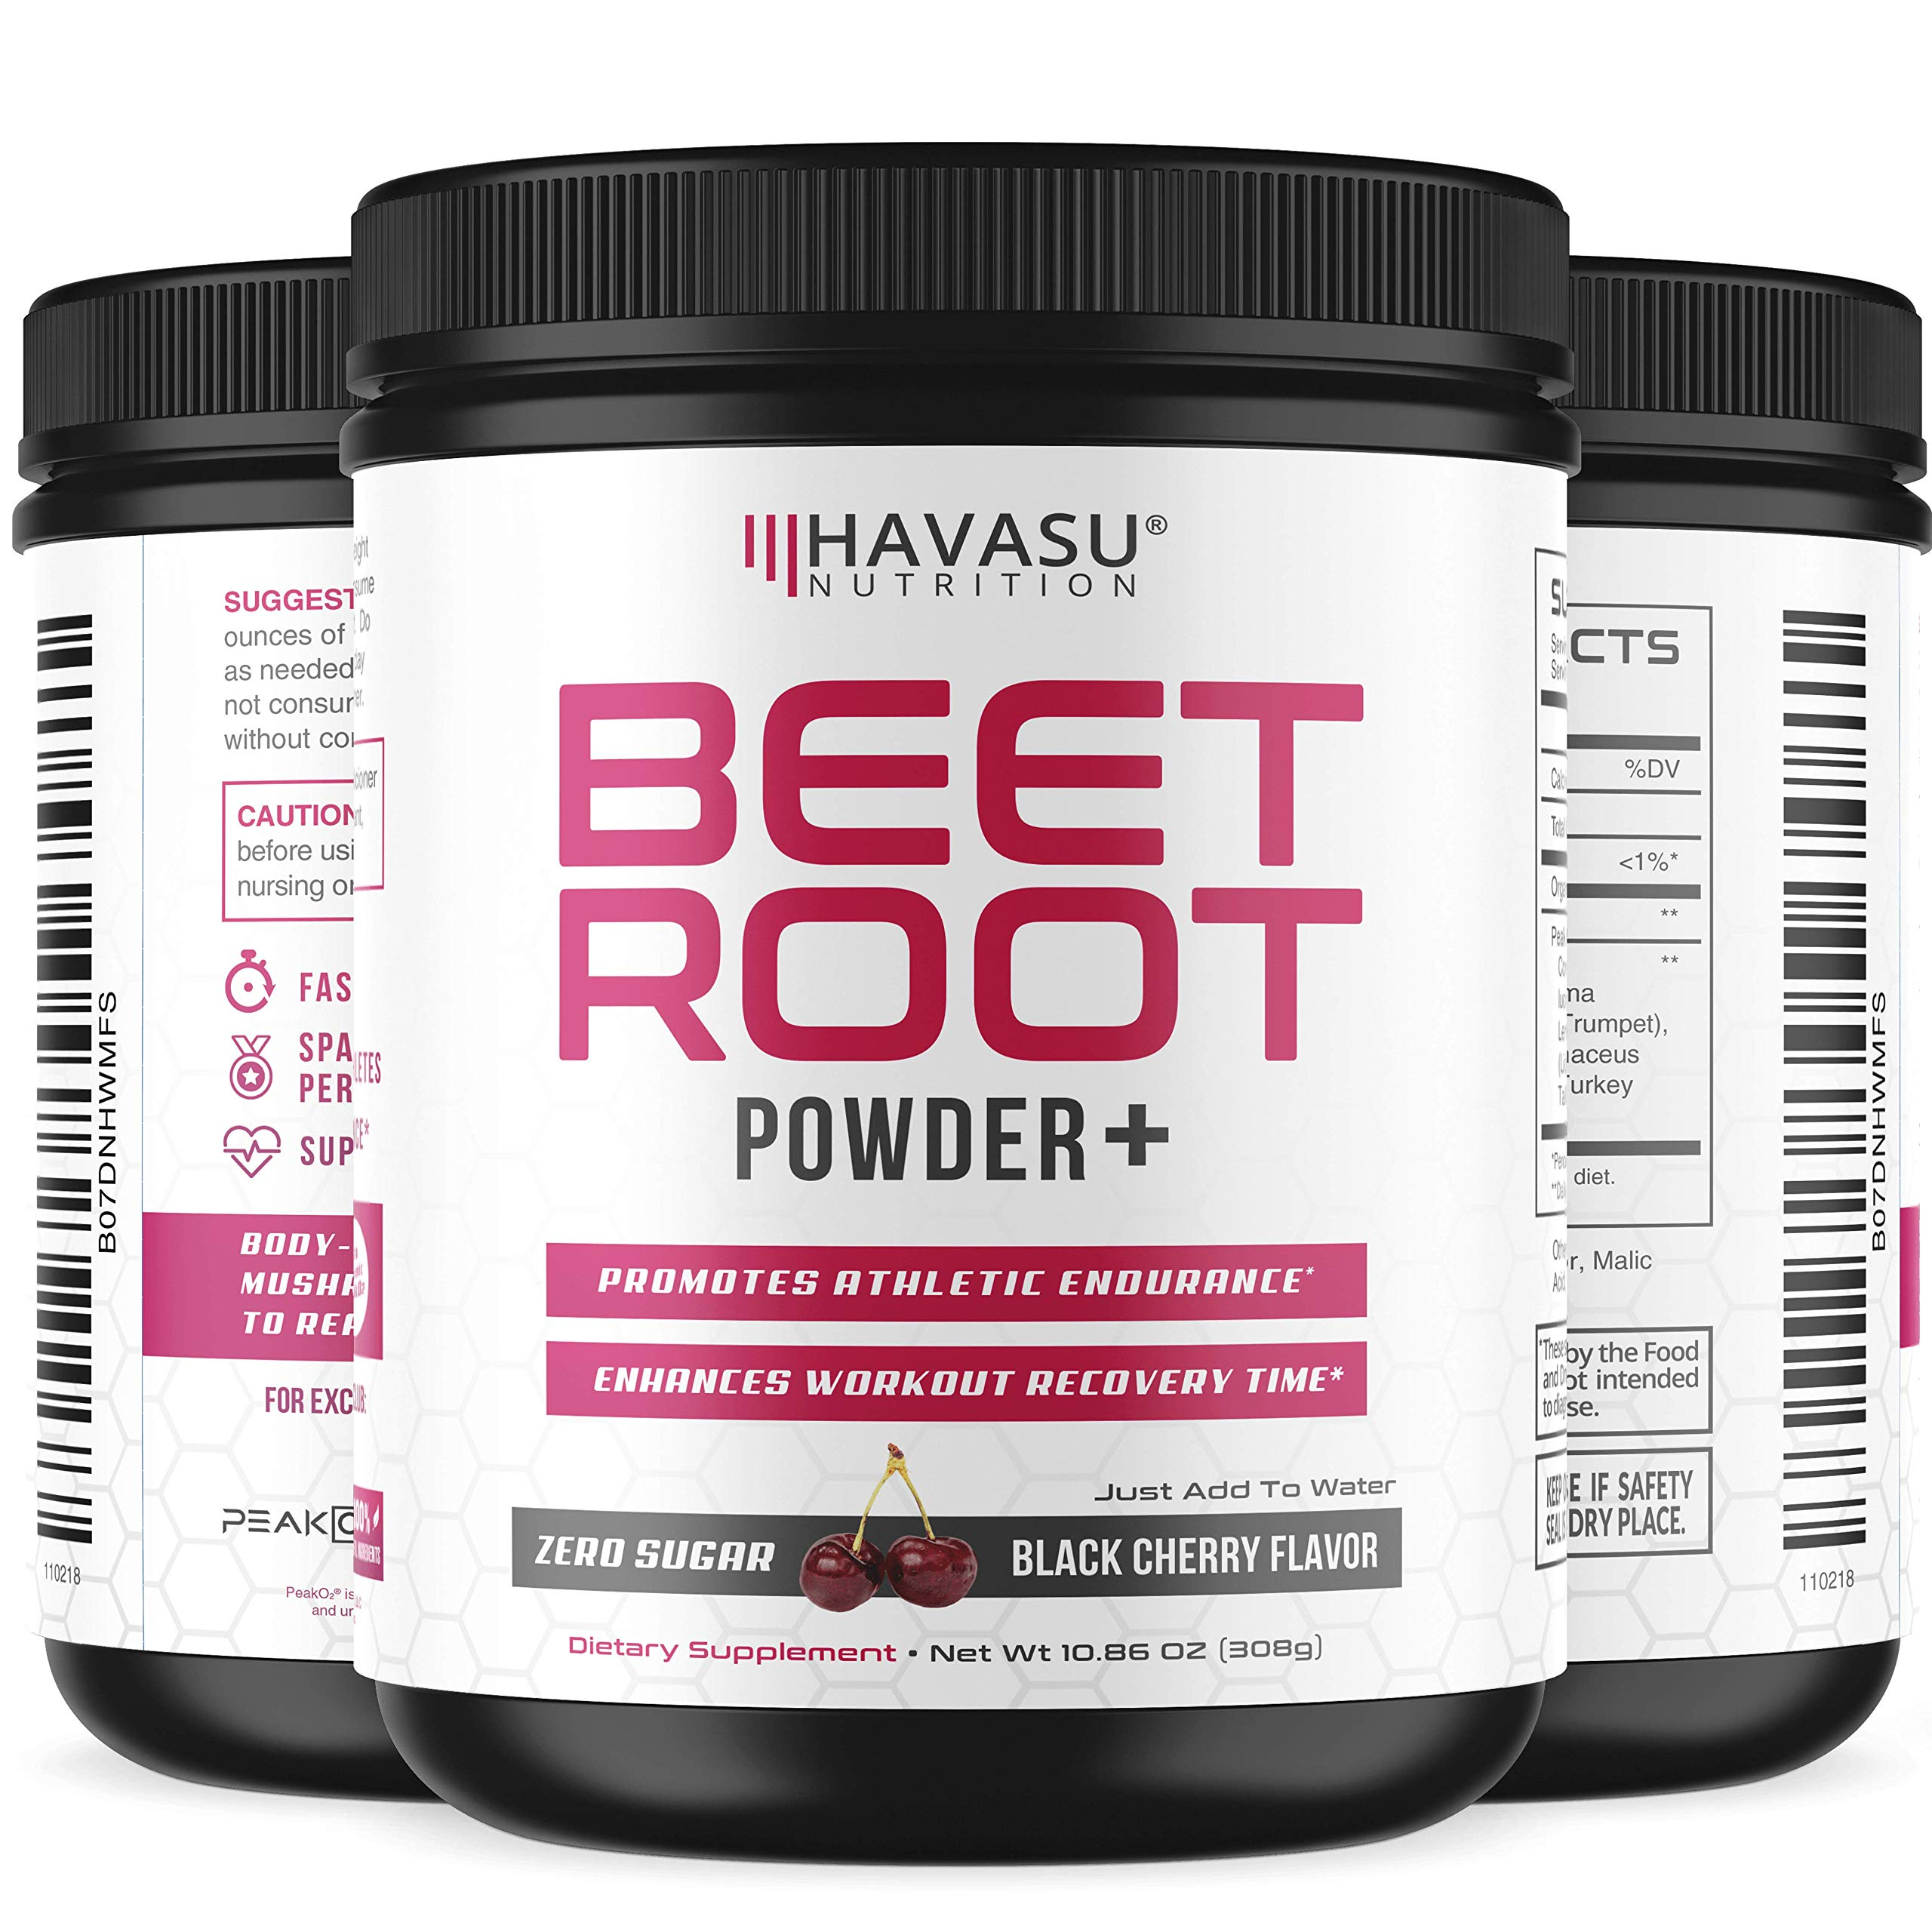 Beet Root Powder with Patented, Organic PeakO2 & Mushroom Blend - Supports Fast Workout Recovery & Promotes Athletic Endurance; No Sugar, Non-GMO by Havasu Nutrition (Image #4)